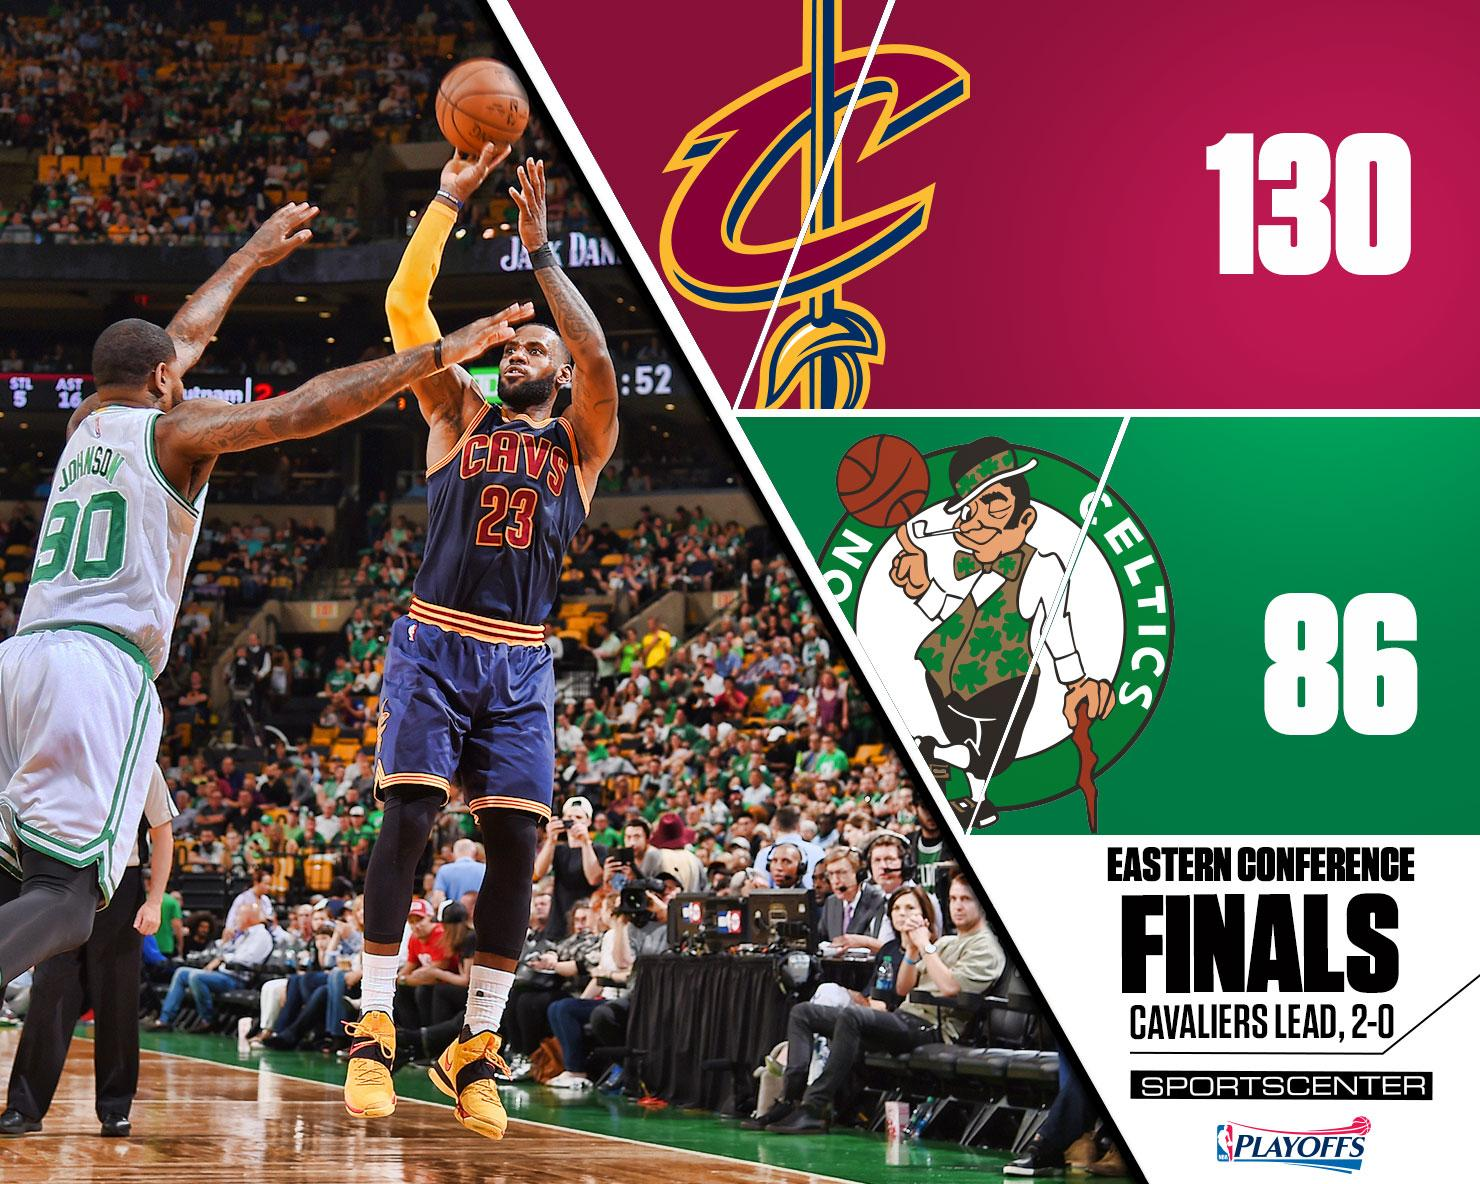 The Cavs dominate the Celtics in Game 2, handing them the worst loss ever by a 1-seed in NBA postseason history. https://t.co/aMFsIBXKvK